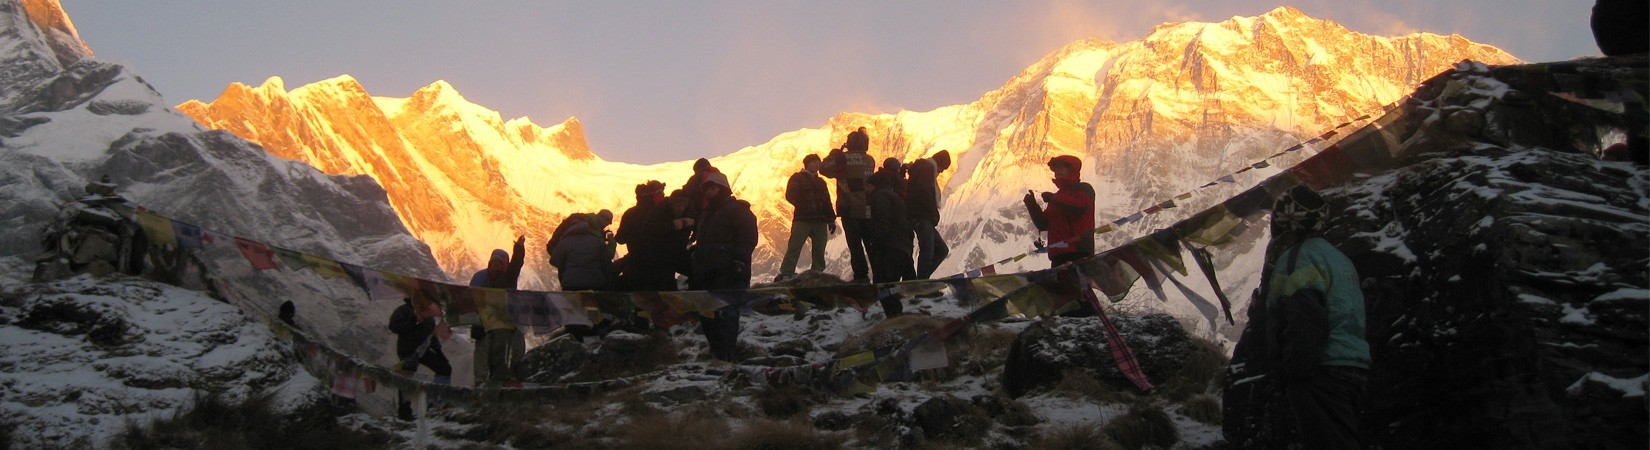 Sun rise at Annapurna I, ABC 4130 m